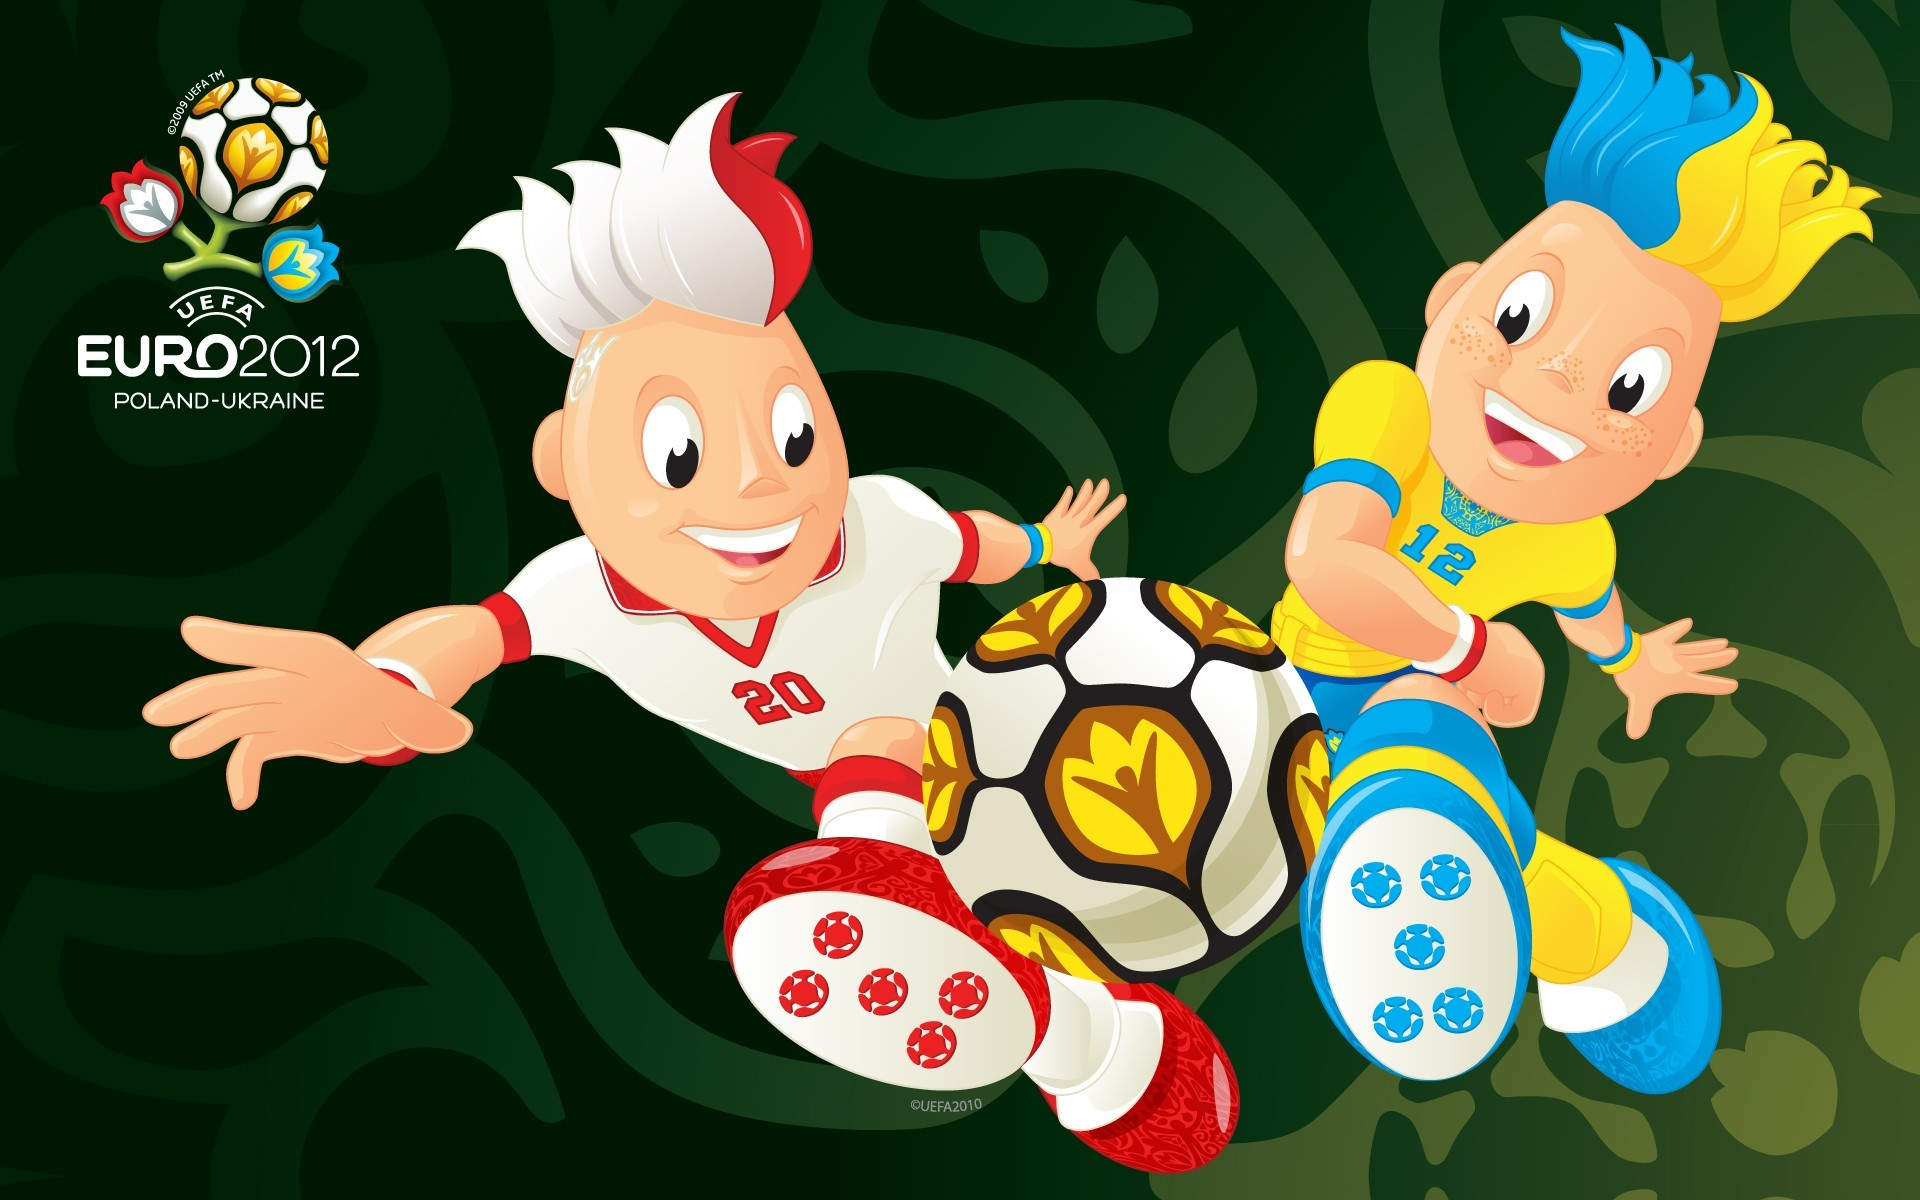 Ukraine Poland euro 2012 HD Wallpaper